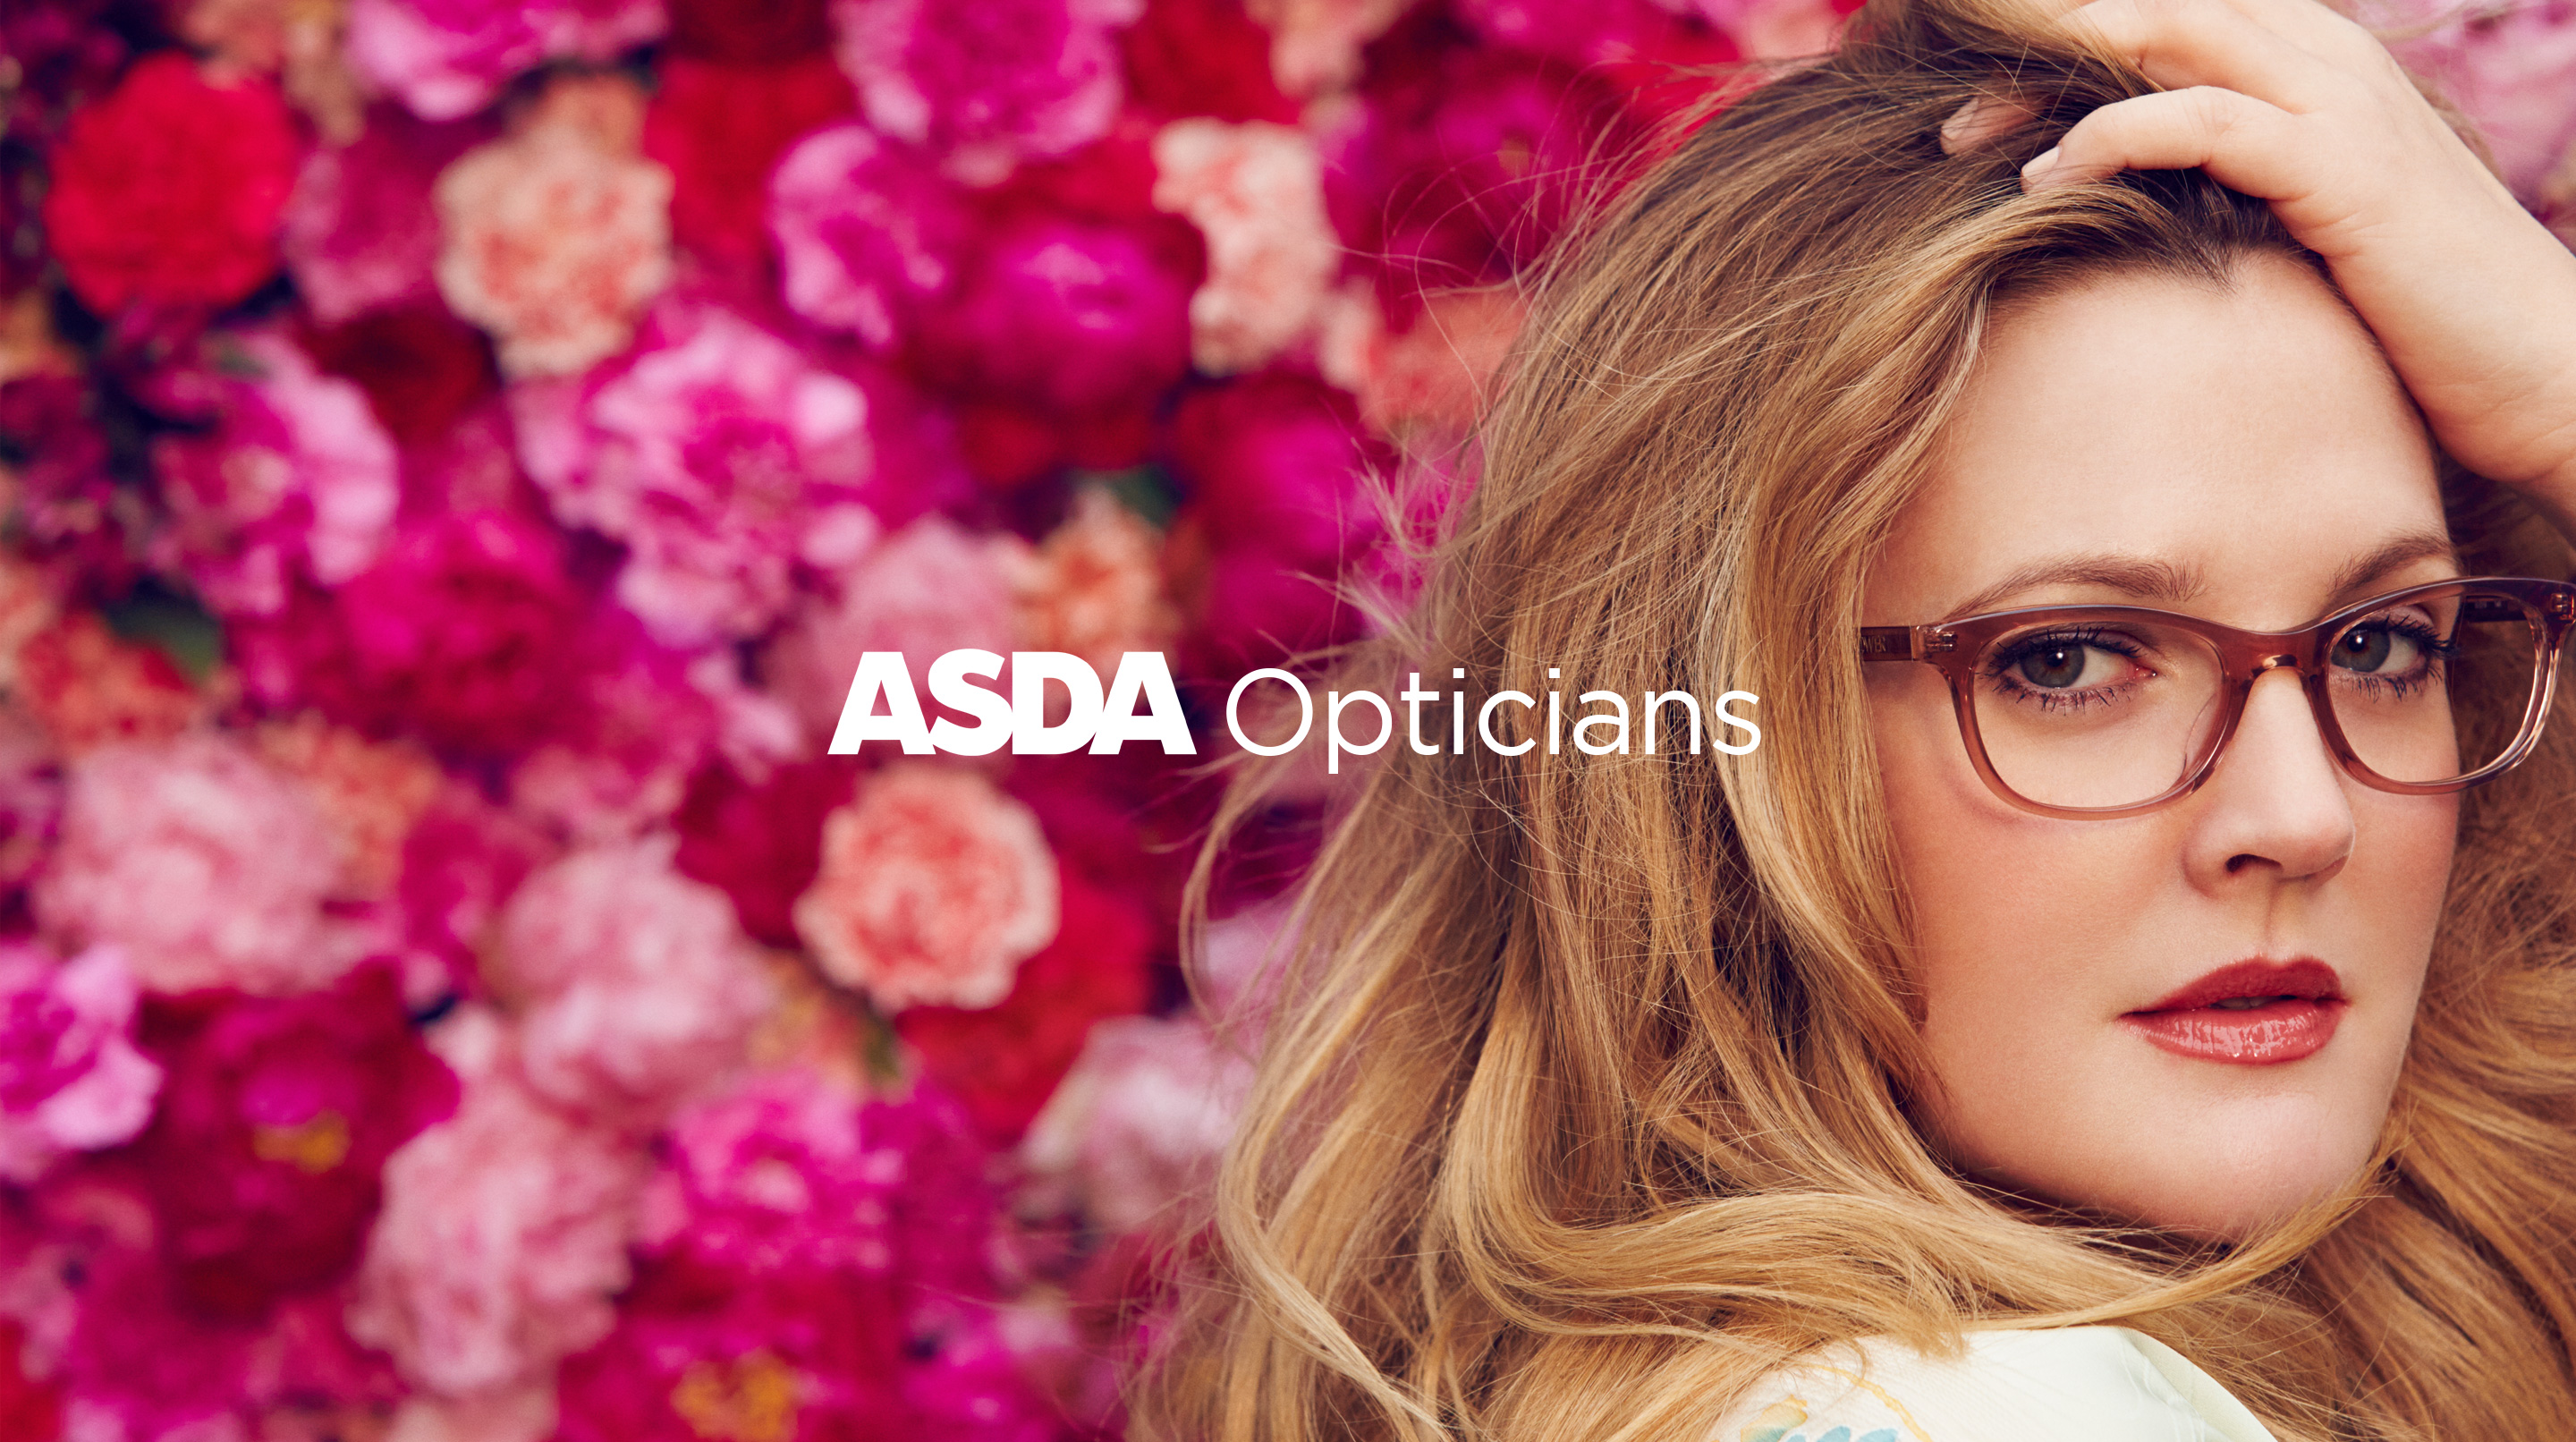 asda_opticians_01